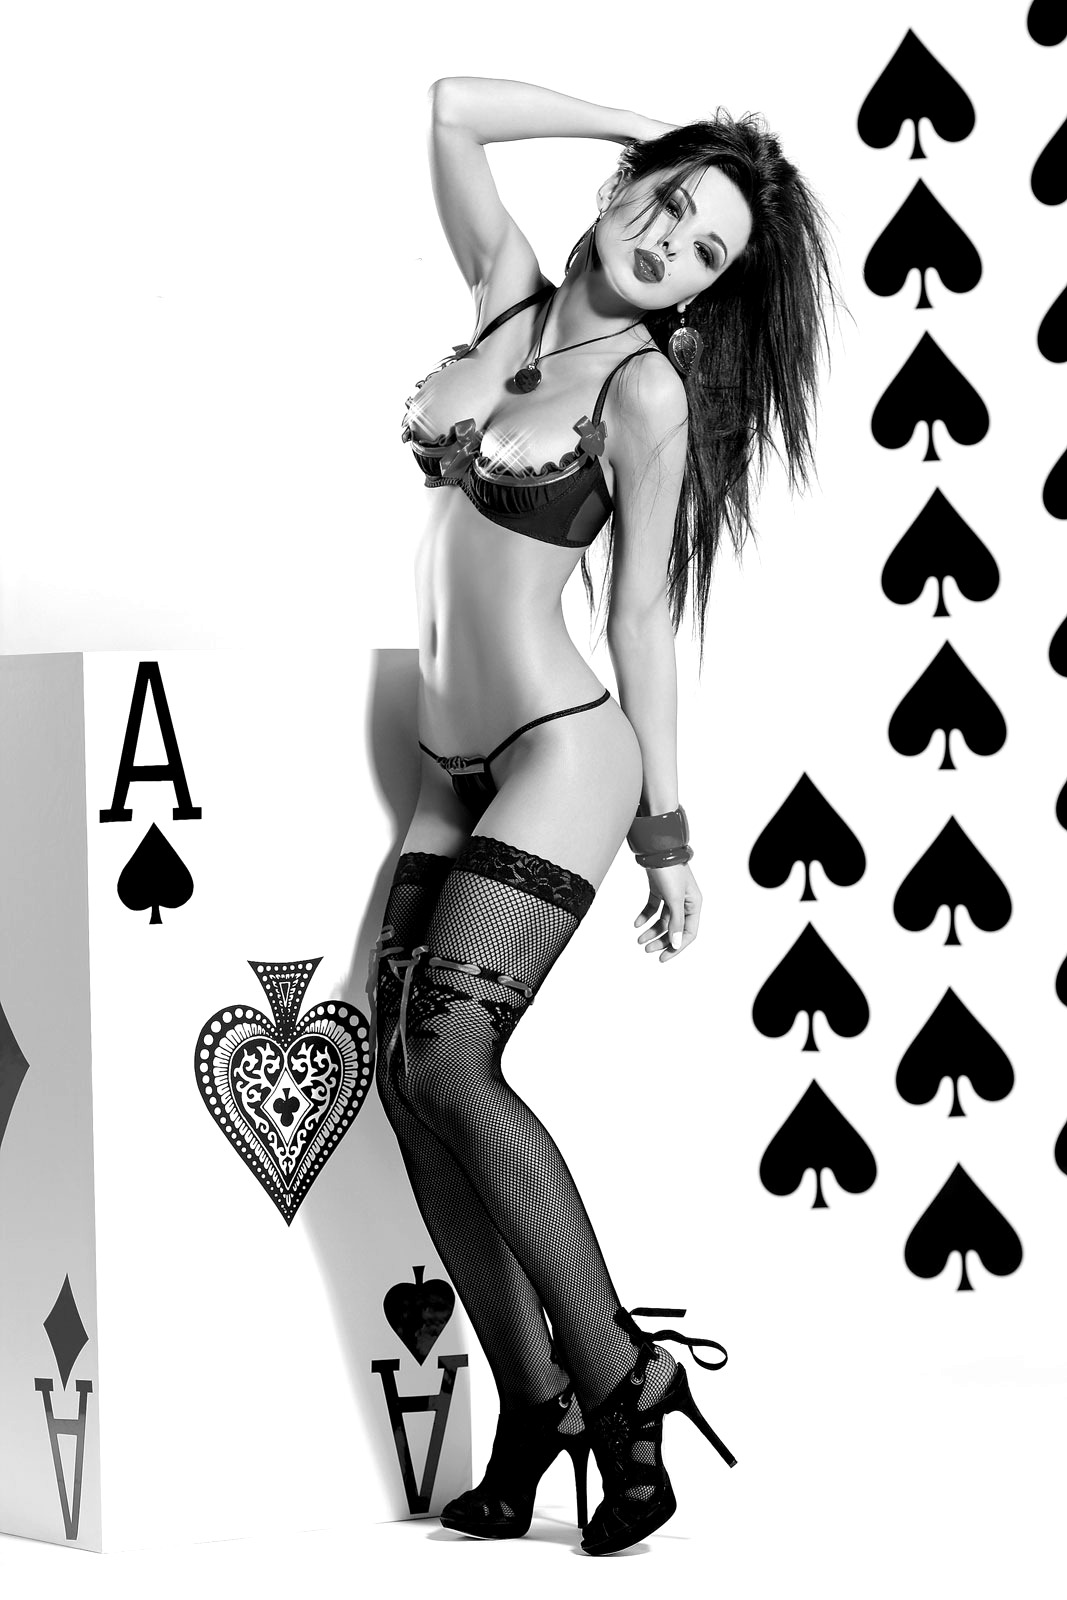 lovelifesin:  Ace of Spades…hmm…shouldn't it be the Queen of Hearts? ;)